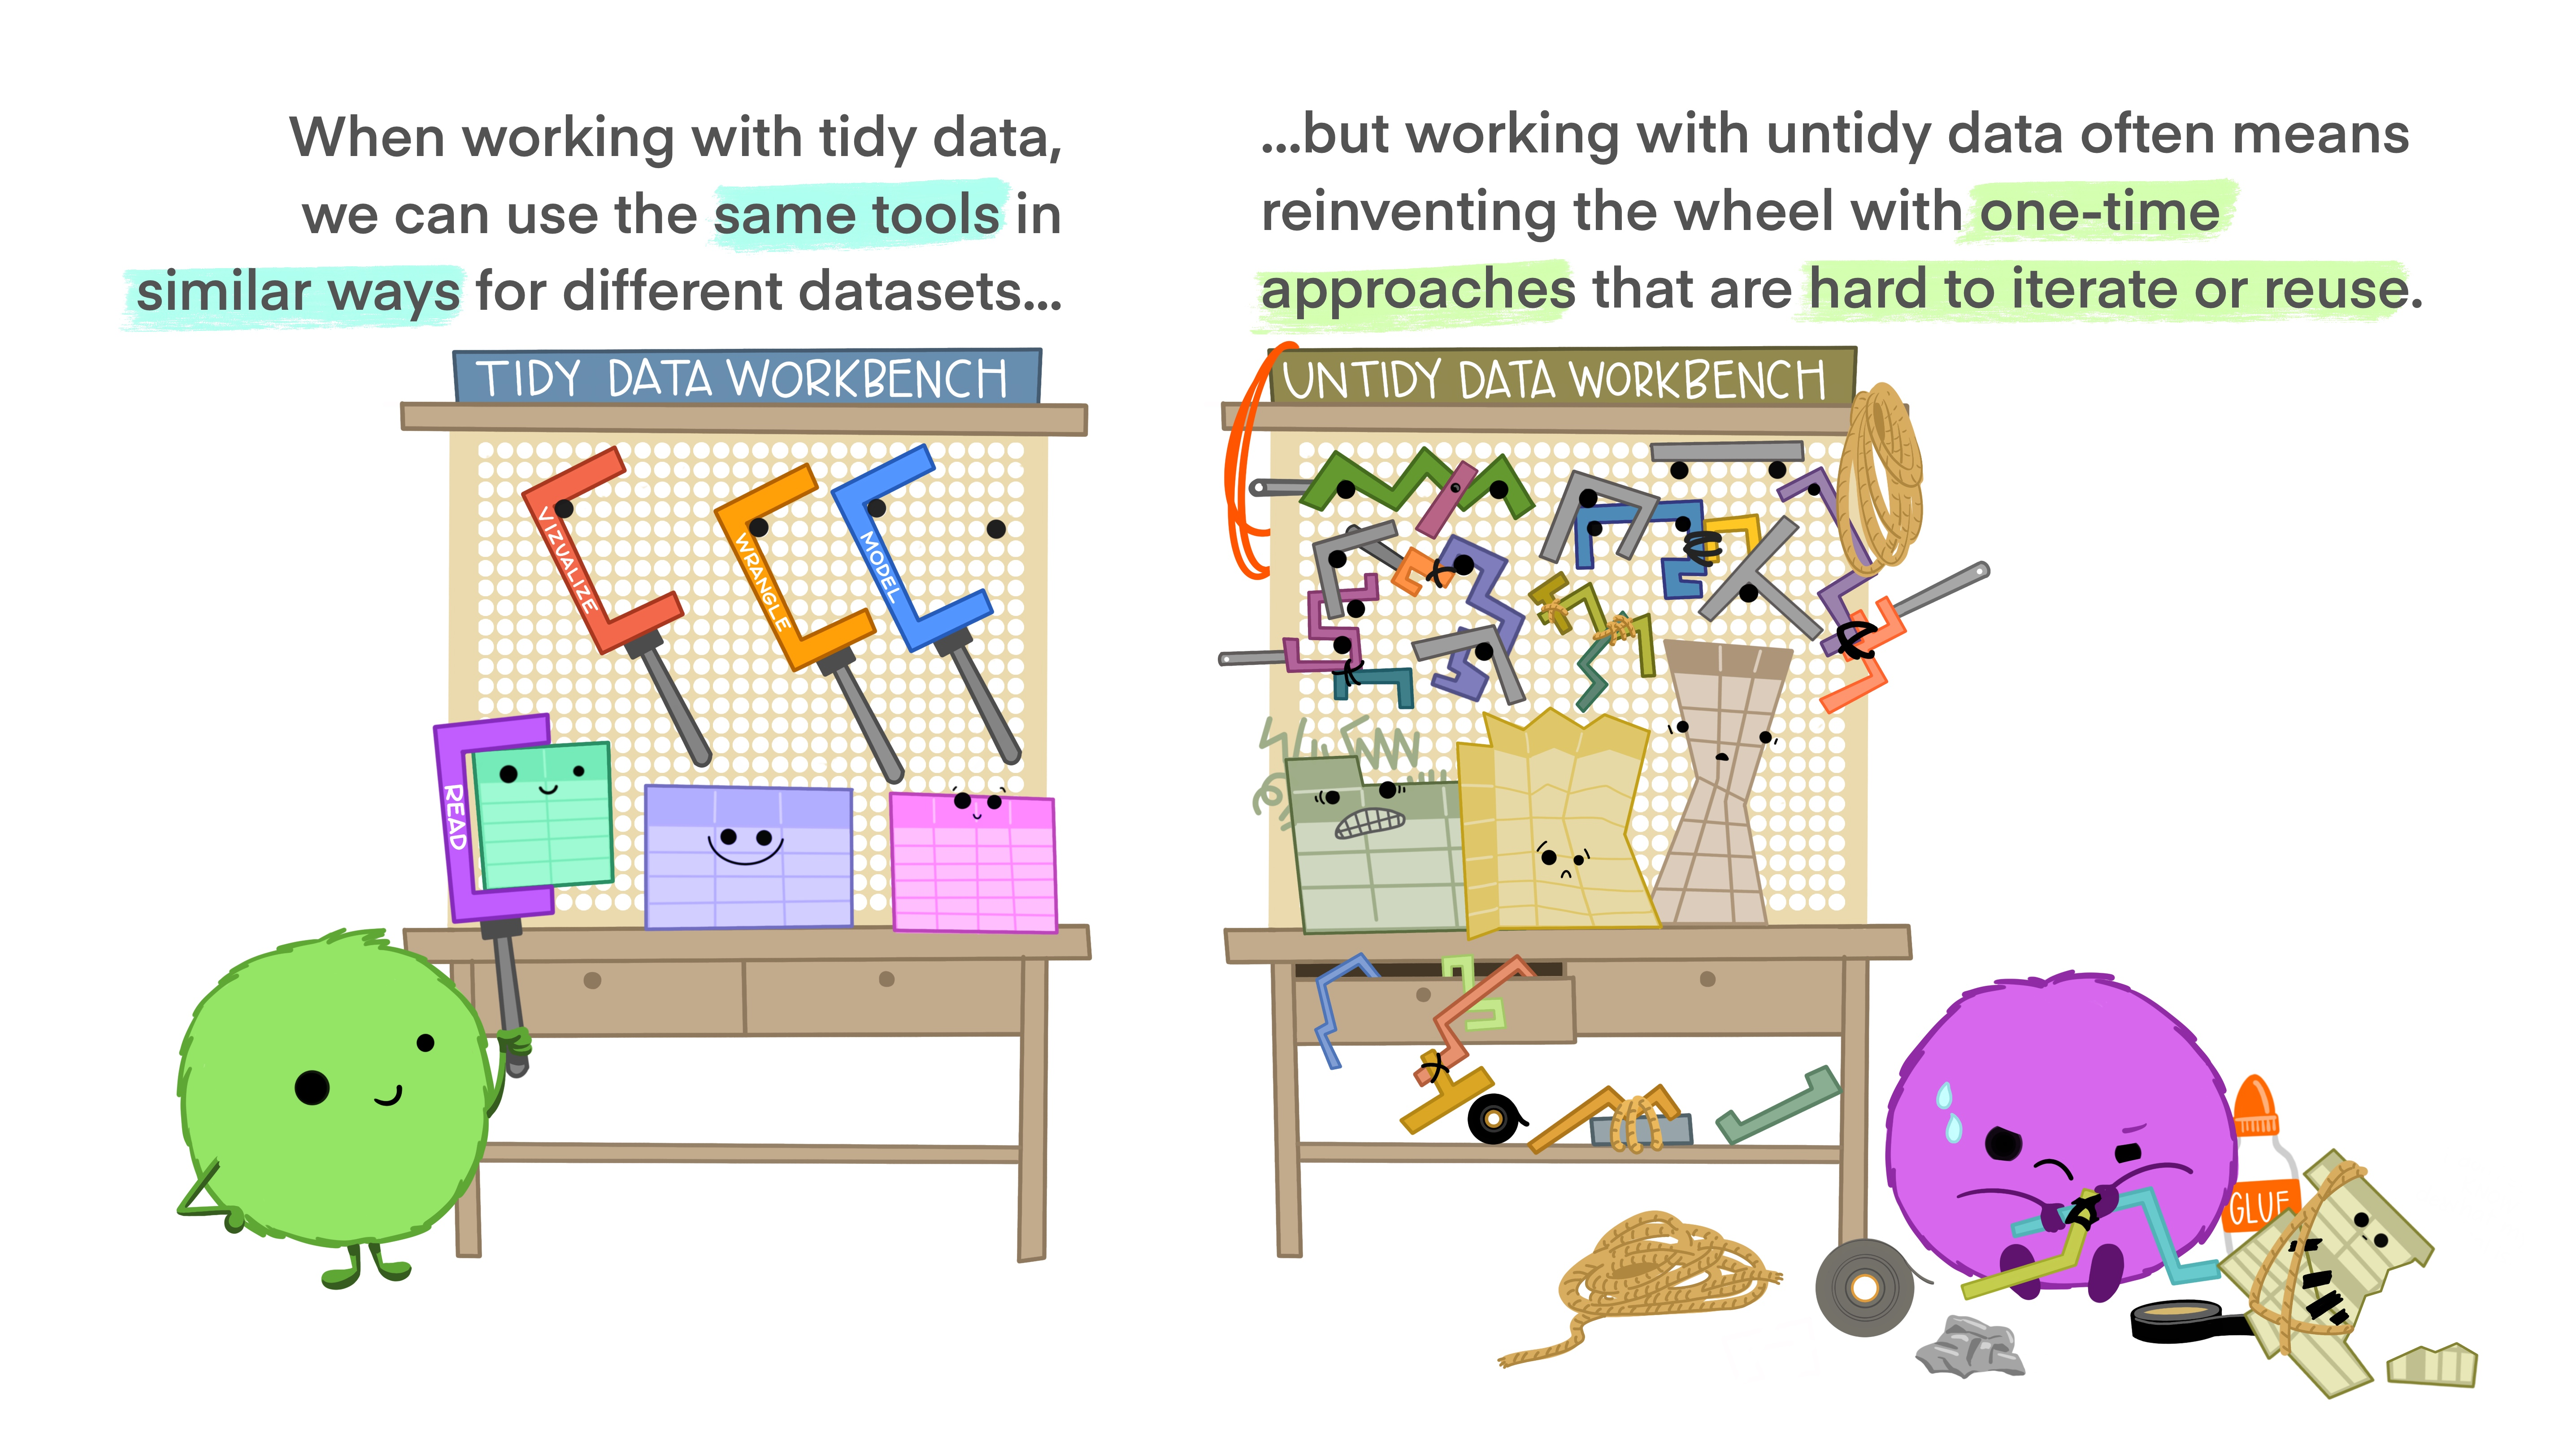 Tidy tools require tidy data